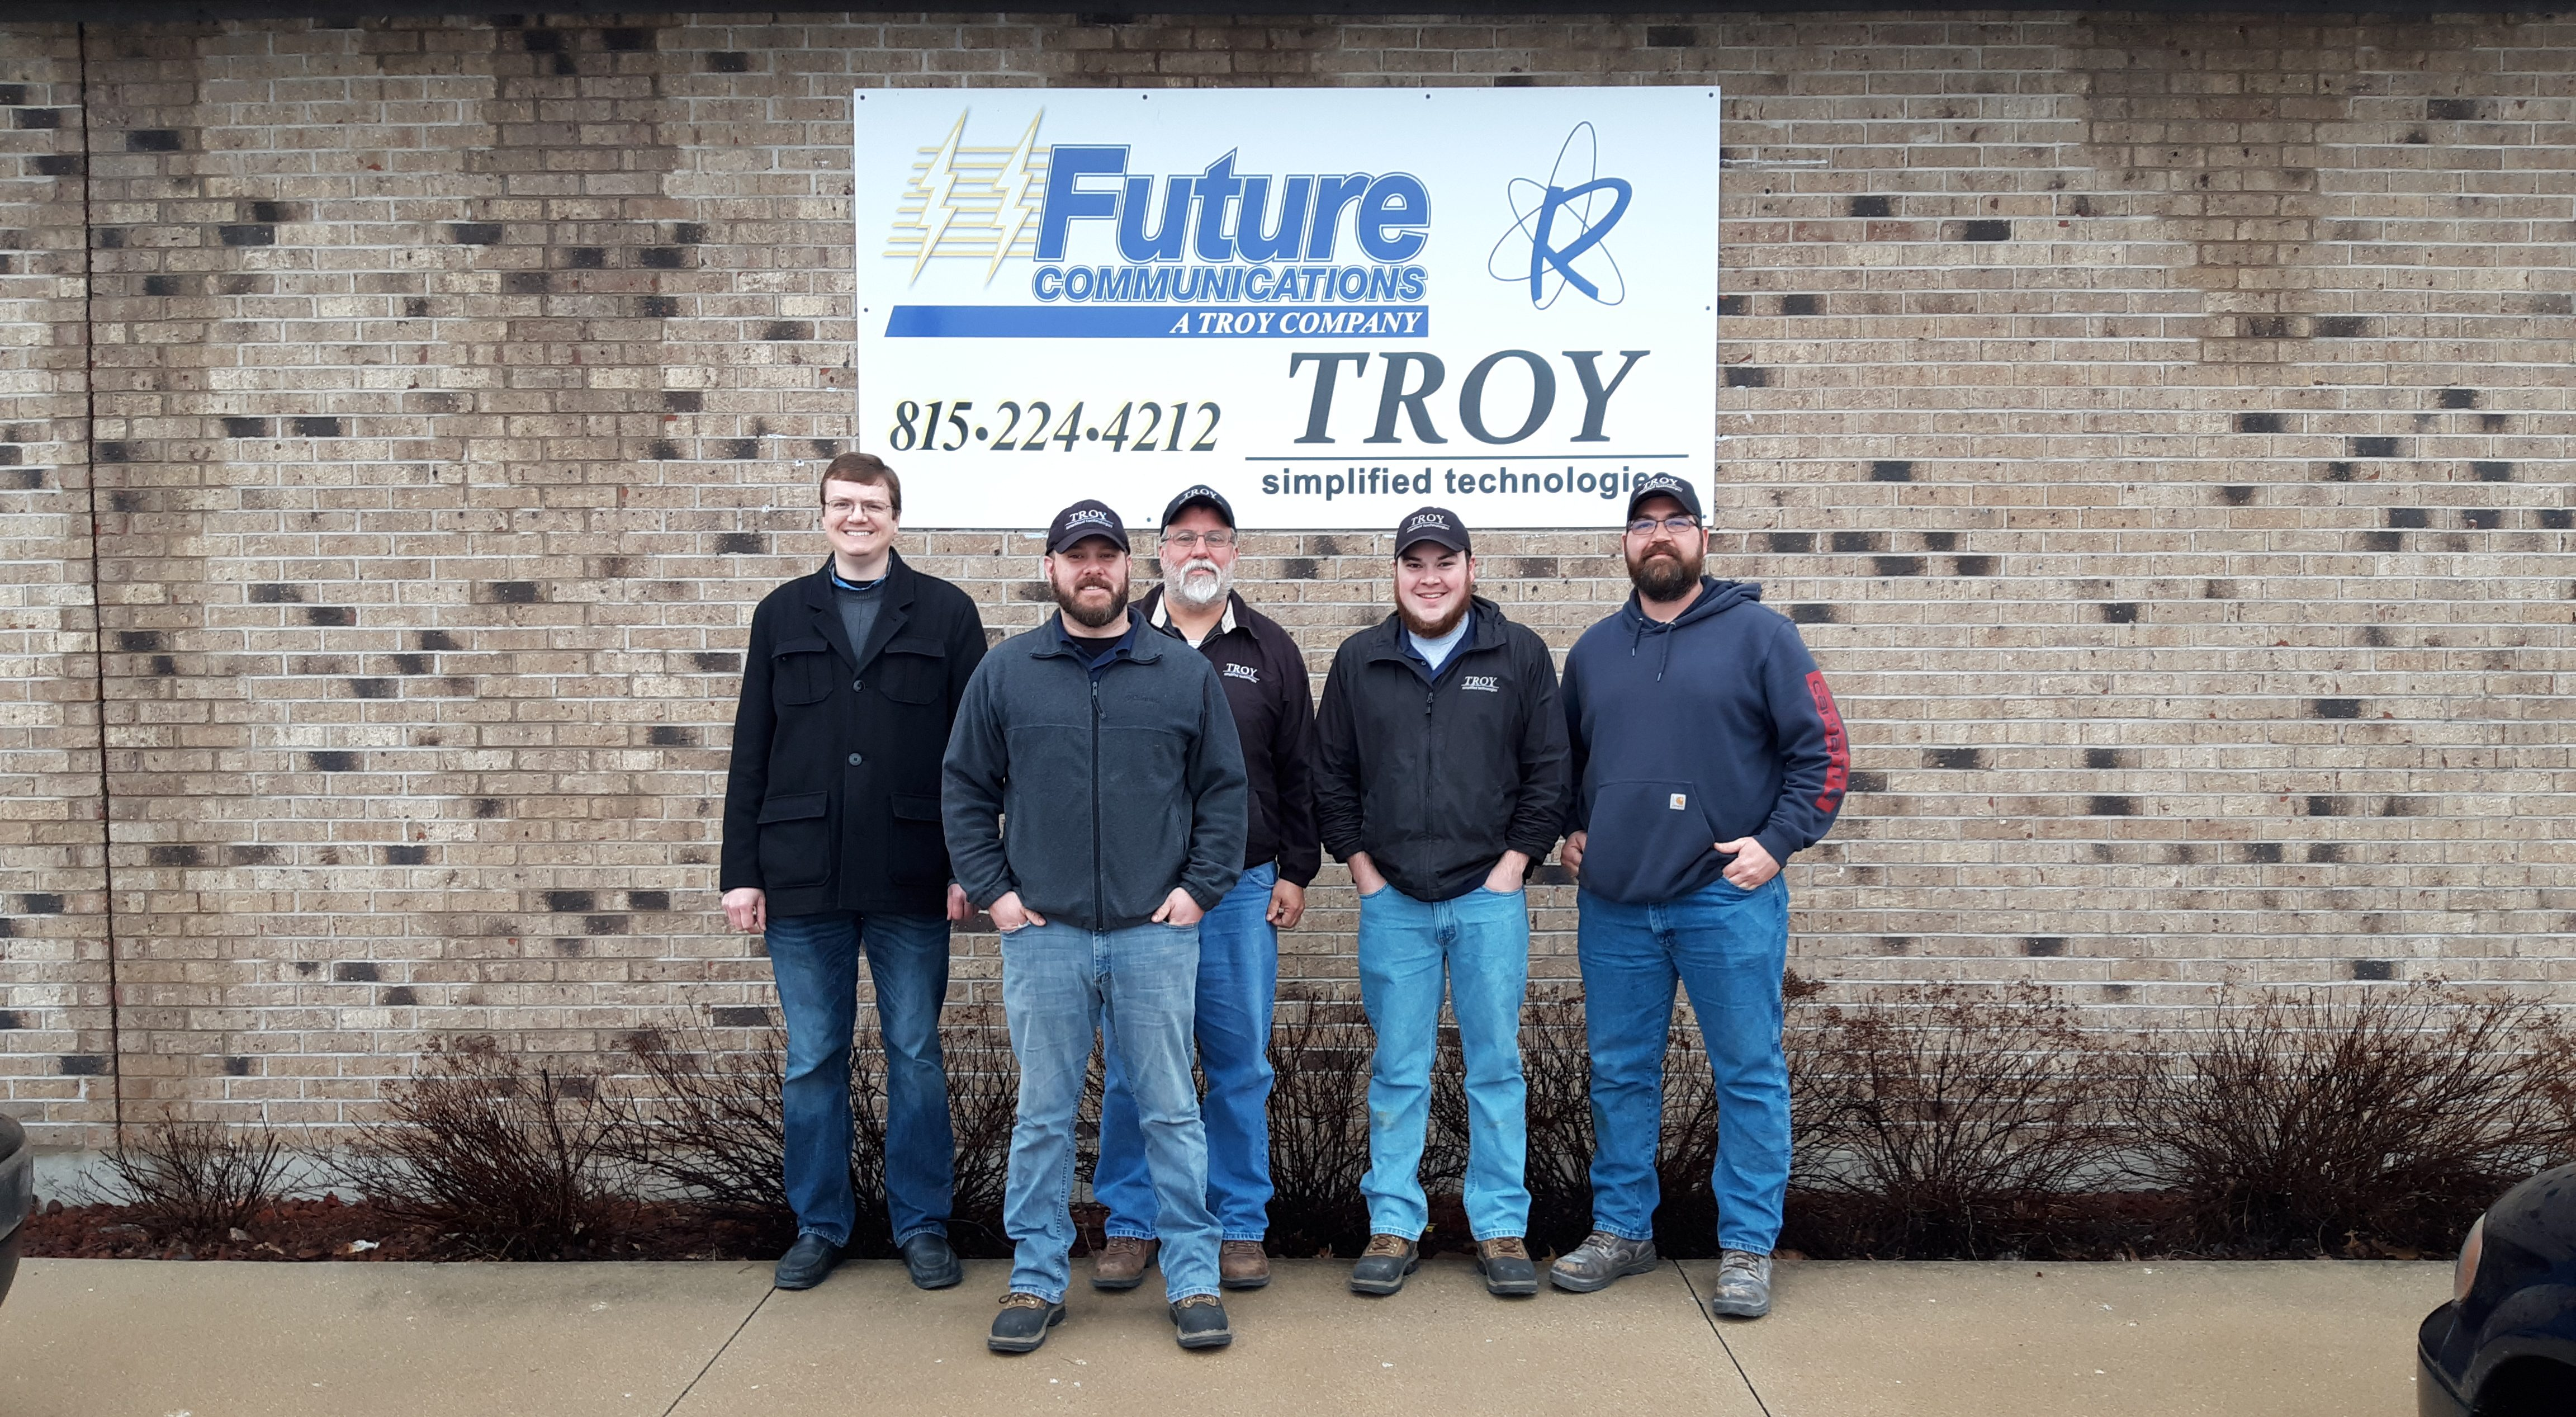 Troy Simptech employees, smiling in front of their logo.